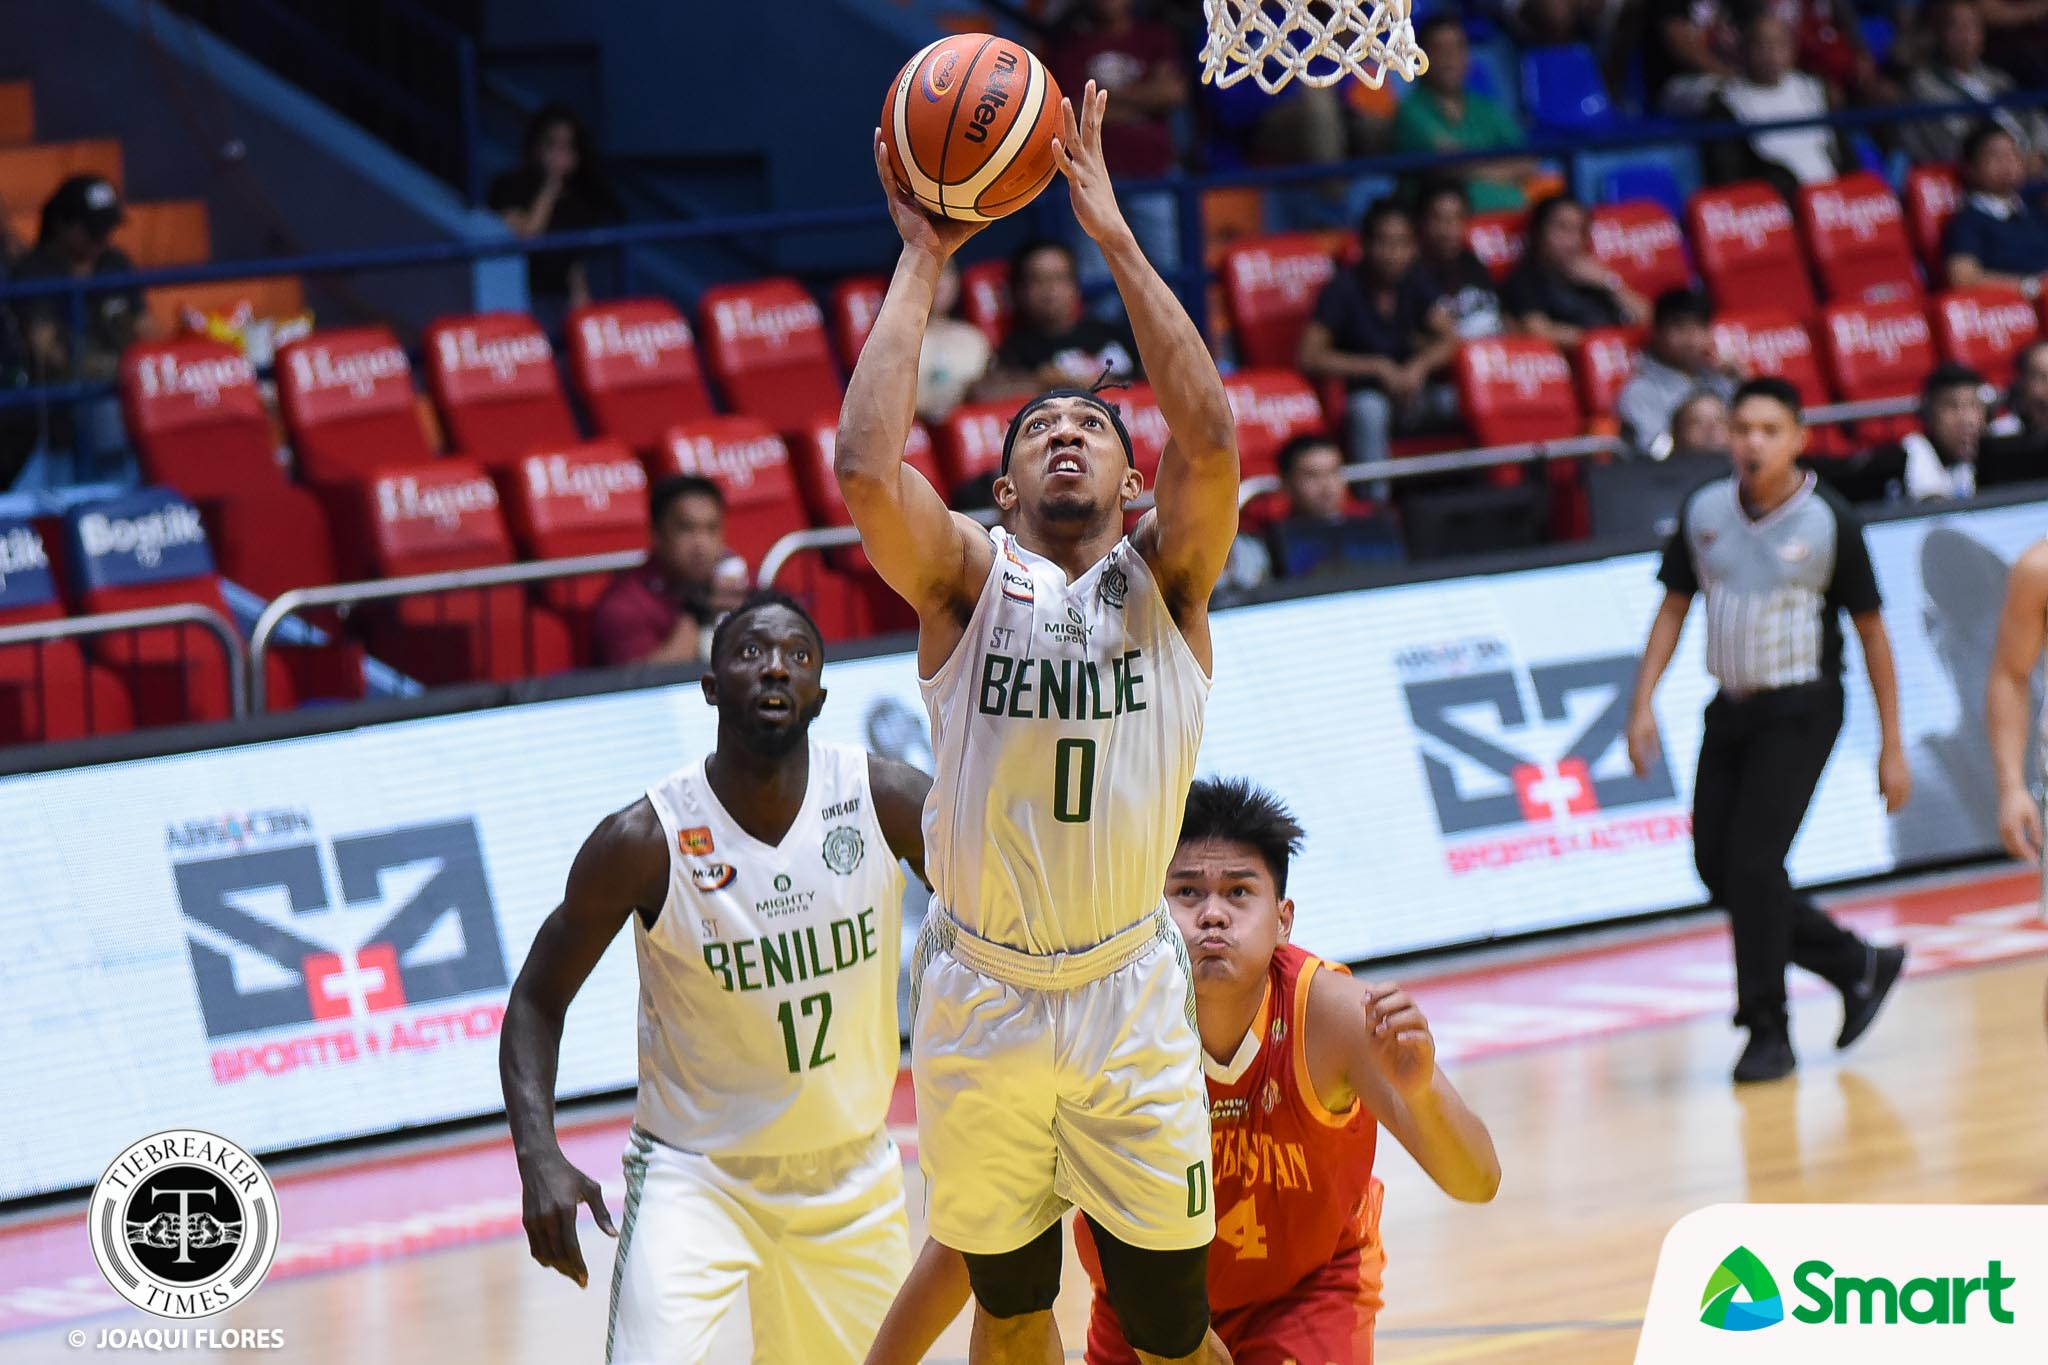 Tiebreaker Times Yankie Haruna, Clement Leutcheu miss first half due to TY Tang's sanction Basketball CSB NCAA News  Yankie Haruna TY Tang NCAA Season 94 Seniors Basketball NCAA Season 94 Clement Leutcheu Benilde Seniors Basketball